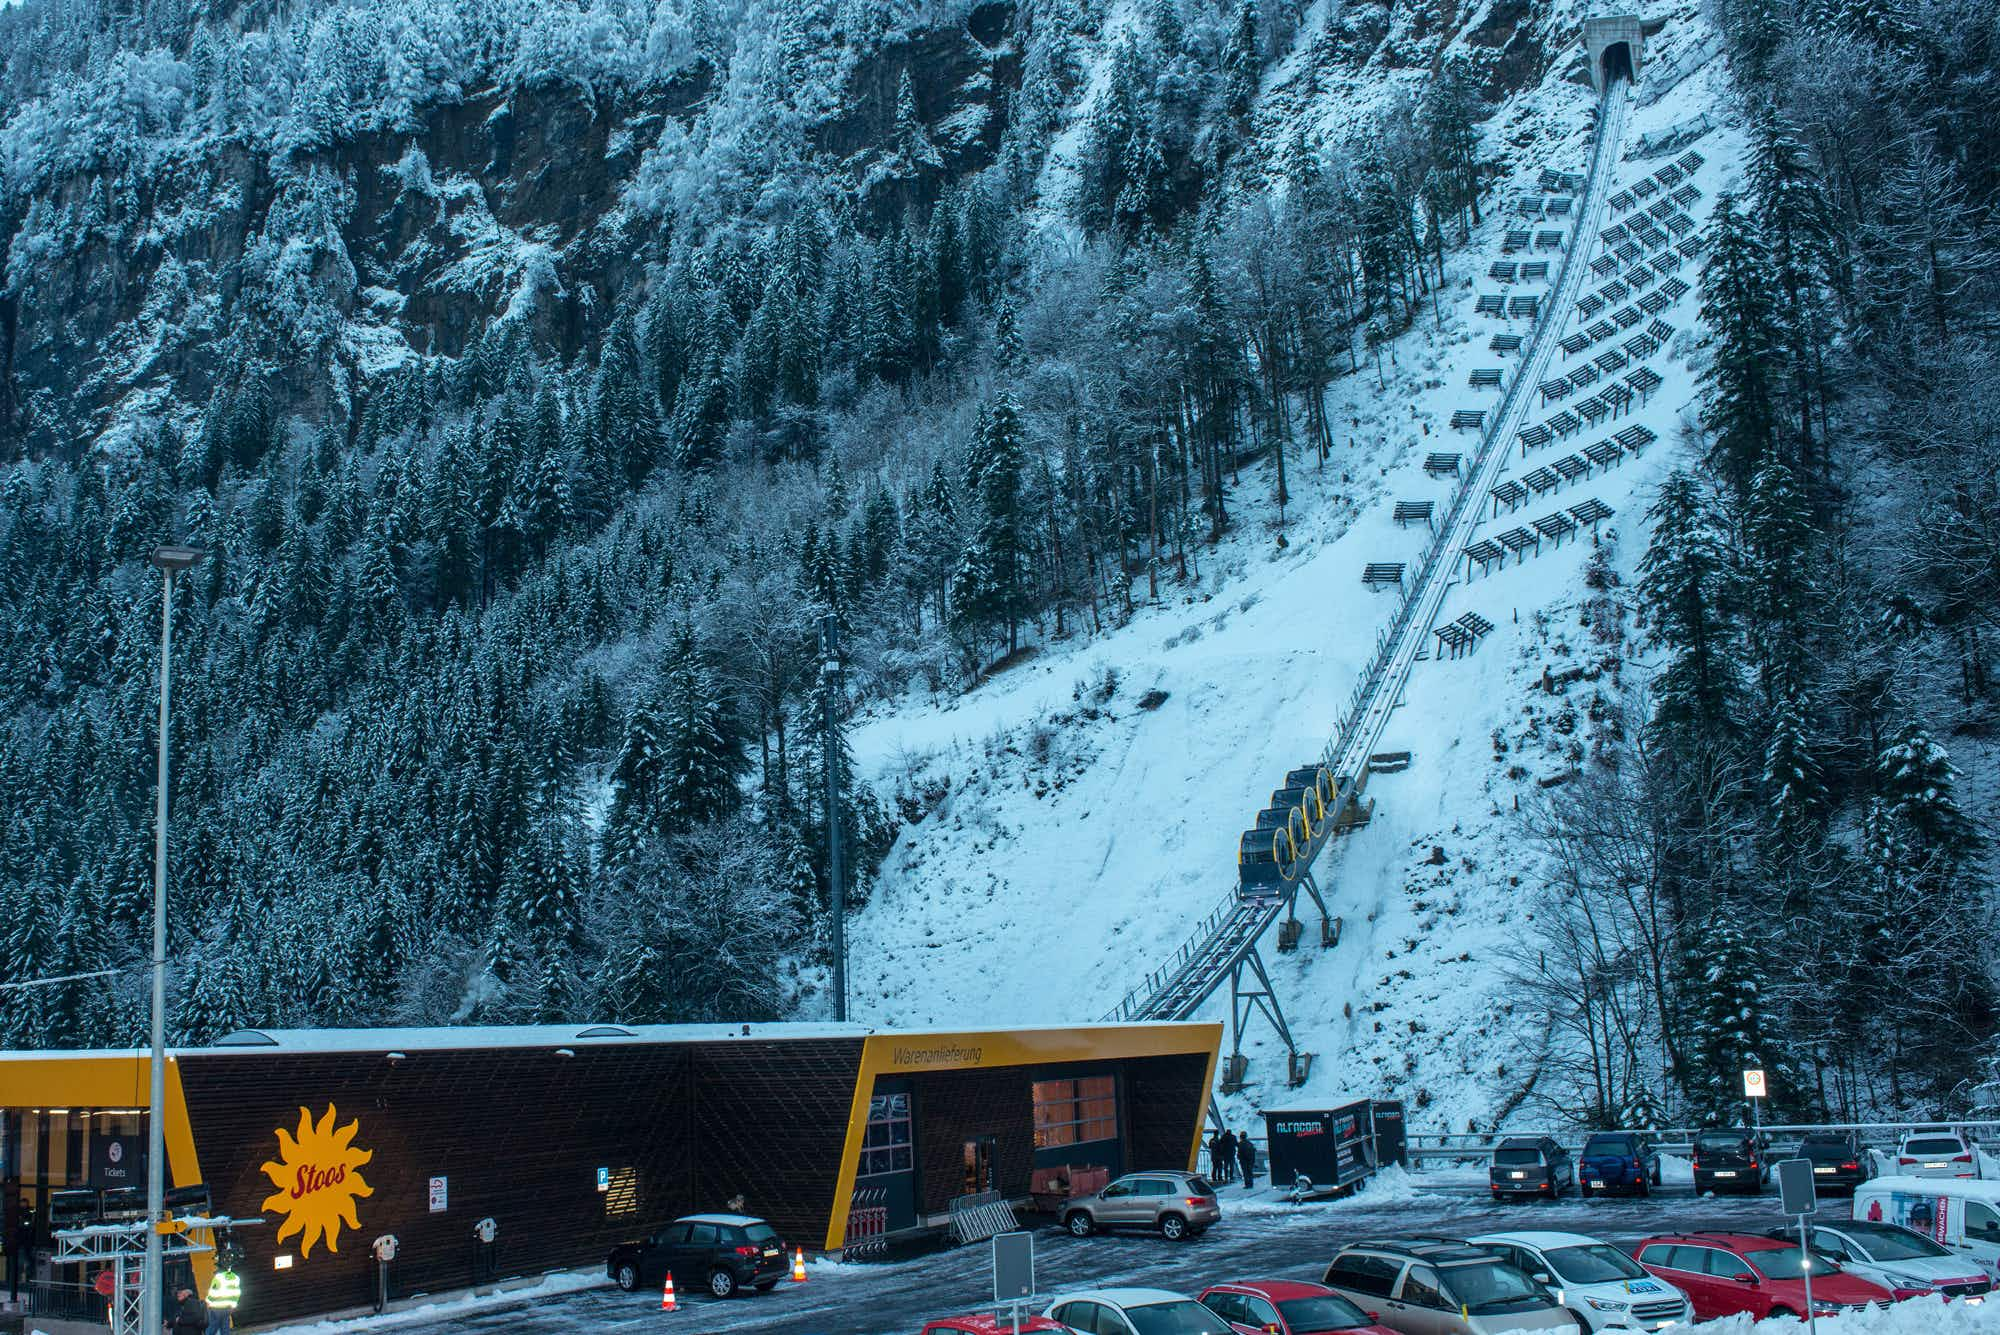 World's steepest funicular railway opens in Swiss mountain village